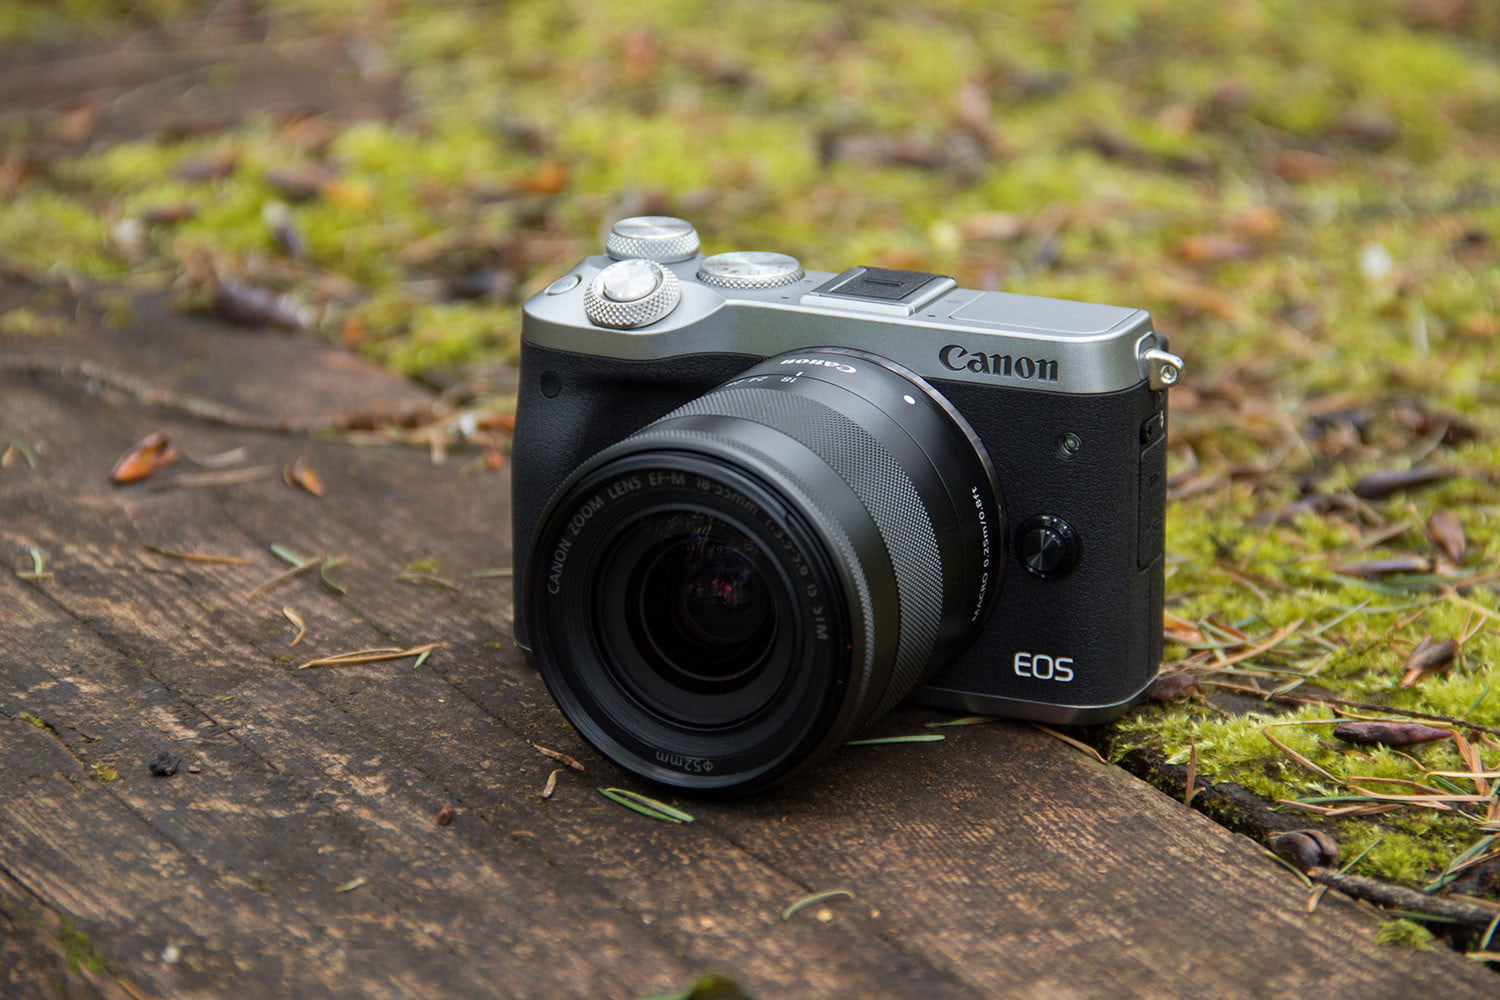 The Best Vlogging Cameras of 2019 for Beginners and Pros